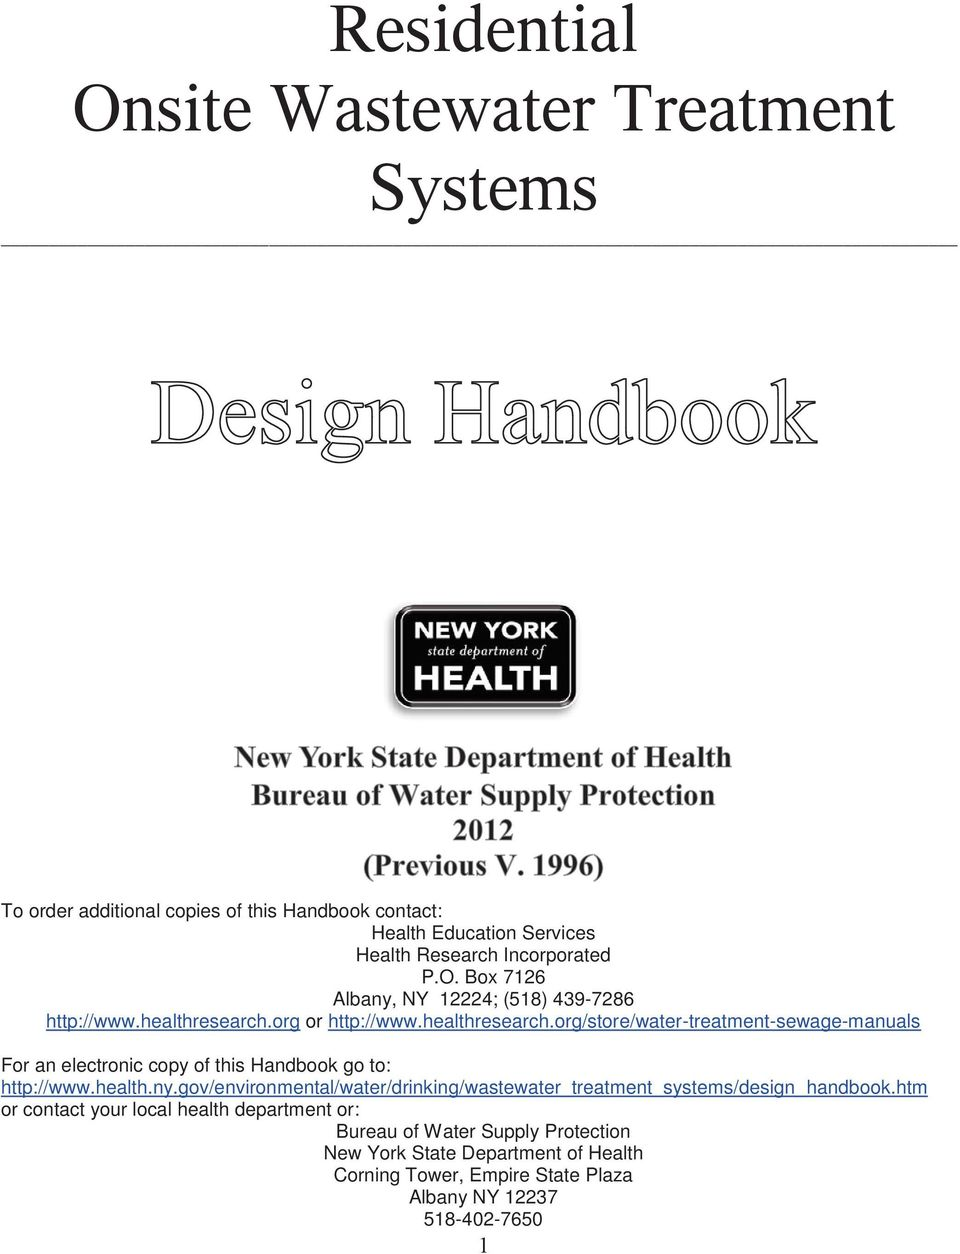 org or http://www.healthresearch.org/store/water-treatment-sewage-manuals For an electronic copy of this Handbook go to: http://www.health.ny.